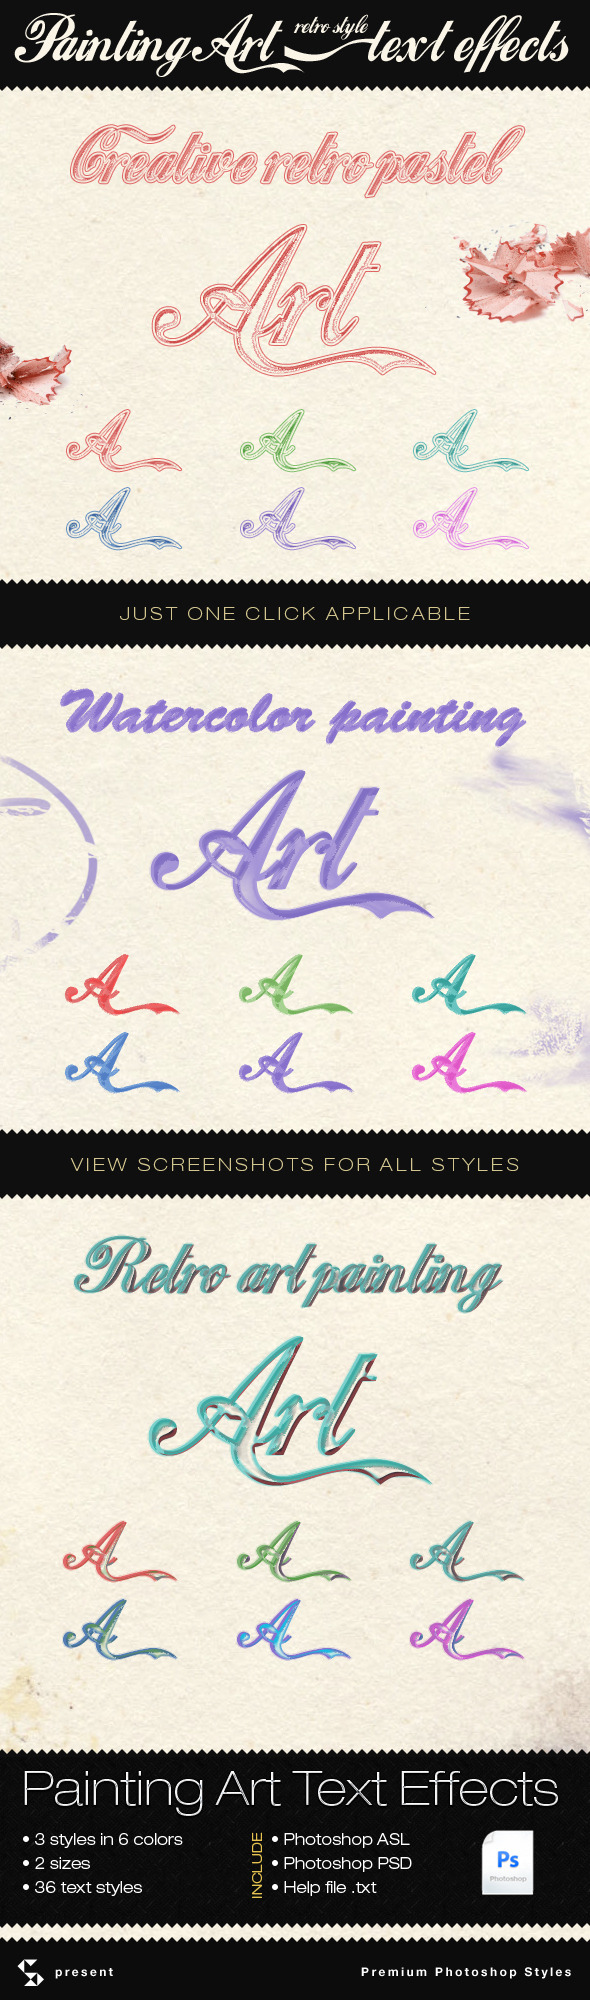 Painting and Retro Art Text Effects - Text Effects Styles